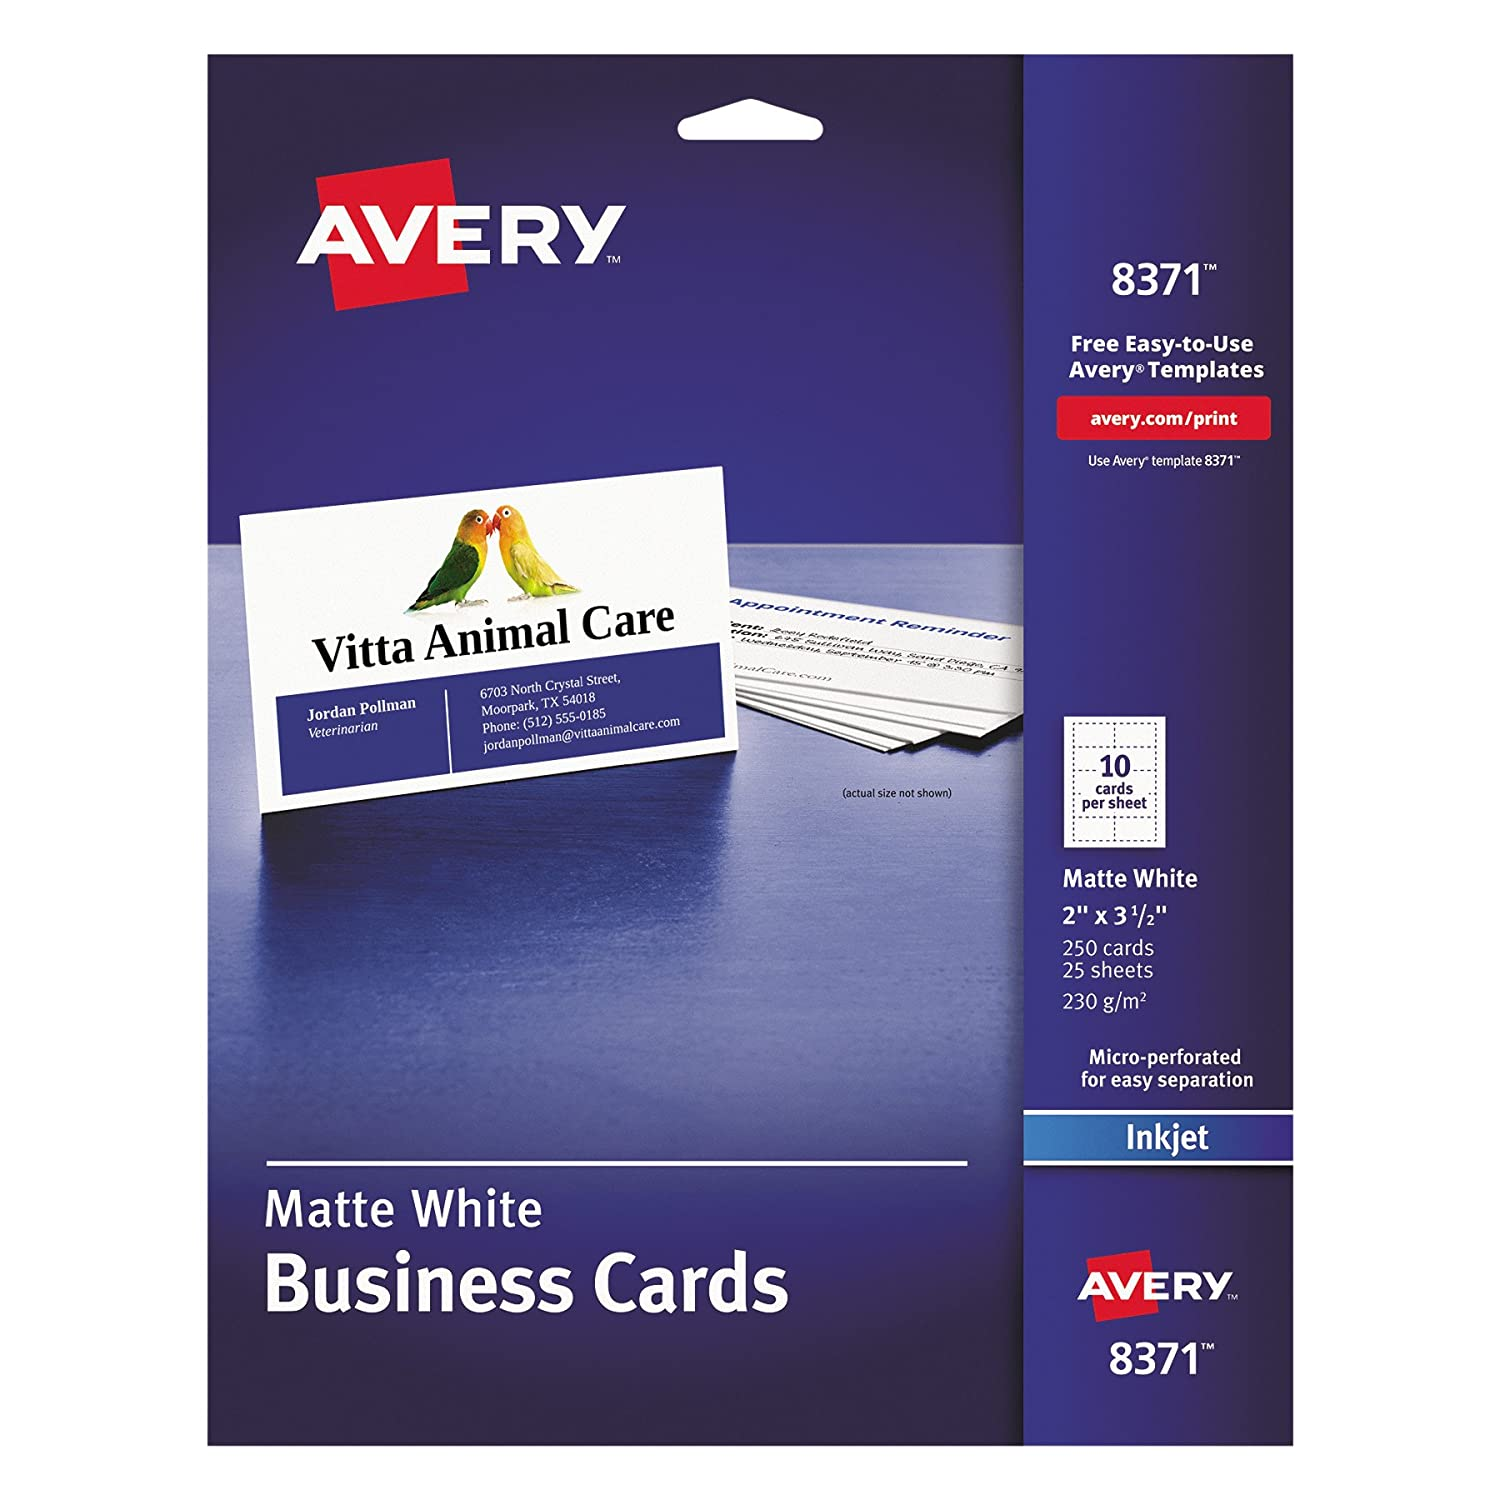 Amazon avery 8371 printable microperf business cards inkjet amazon avery 8371 printable microperf business cards inkjet 2 x 3 12 white matte pack of 250 business card stock office products accmission